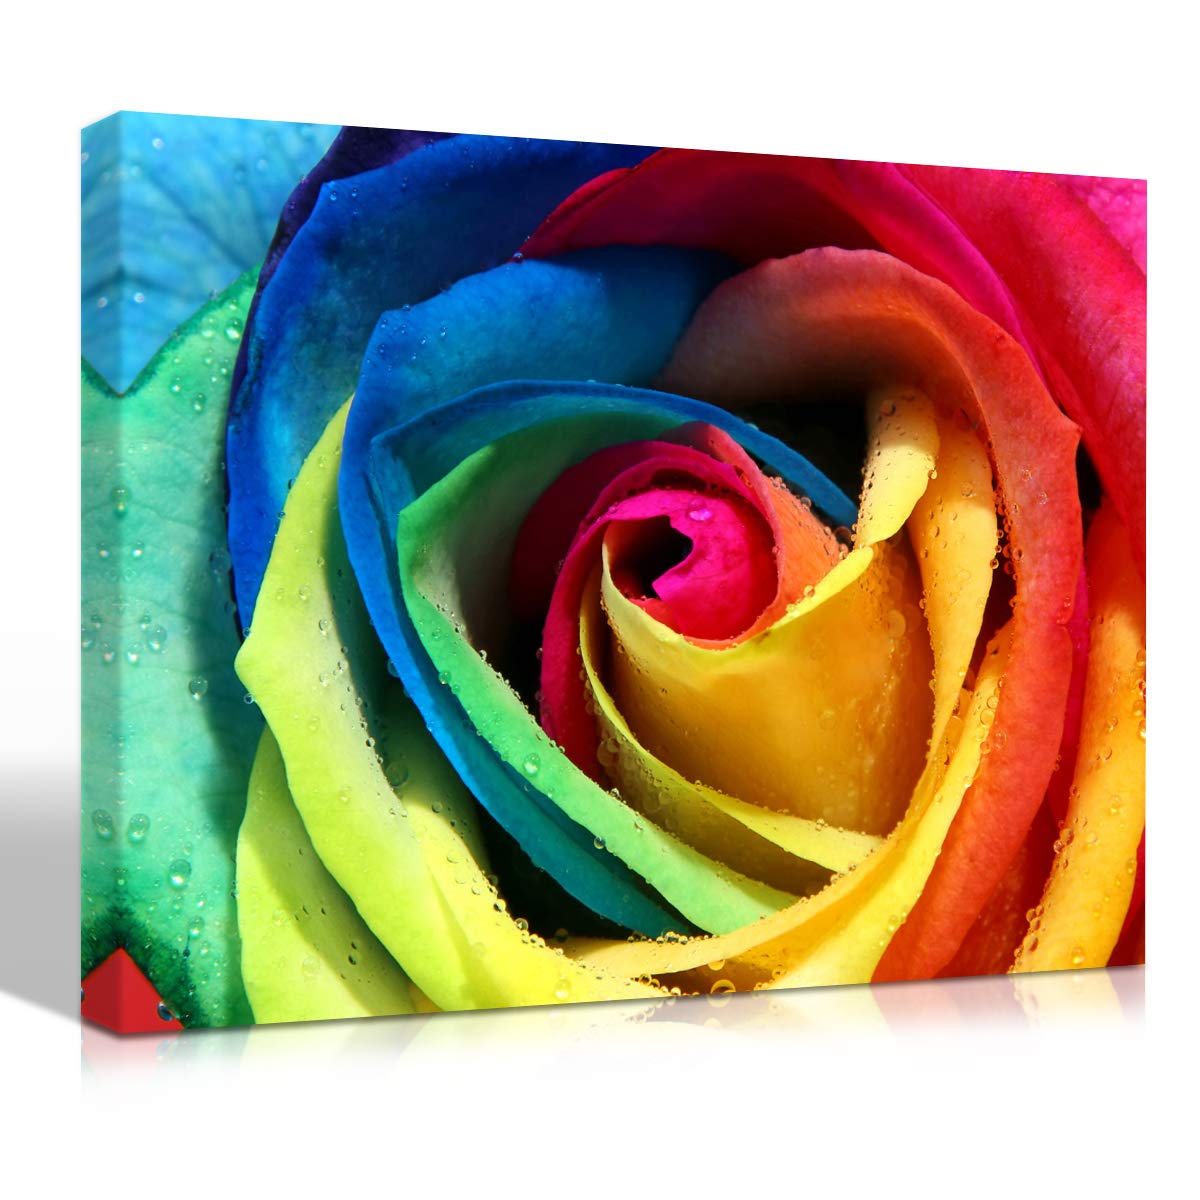 Mon Art Colorful Rose Print on Canvas Wall Art Rainbow Mixed Colors Roses Painting Multicolor Flower Picture Walls Decoration Floral Pictures Paintings Home Decor Framed Artwork 12x16 inch 1 Panel Set